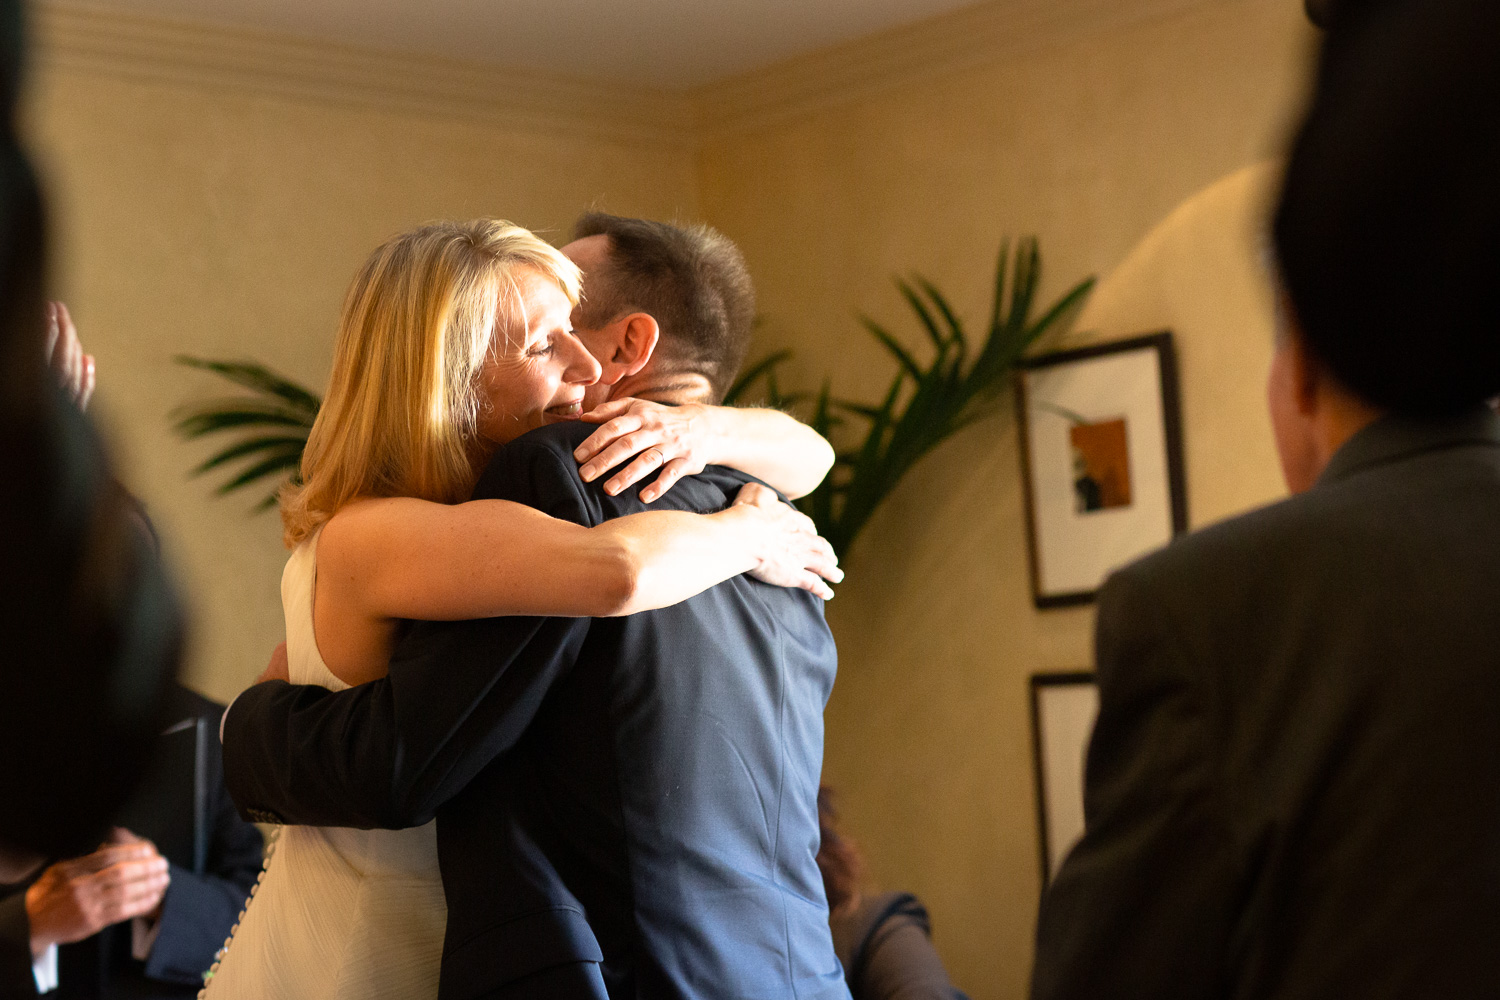 The palpable love between a newly married couple of a joy to behold.